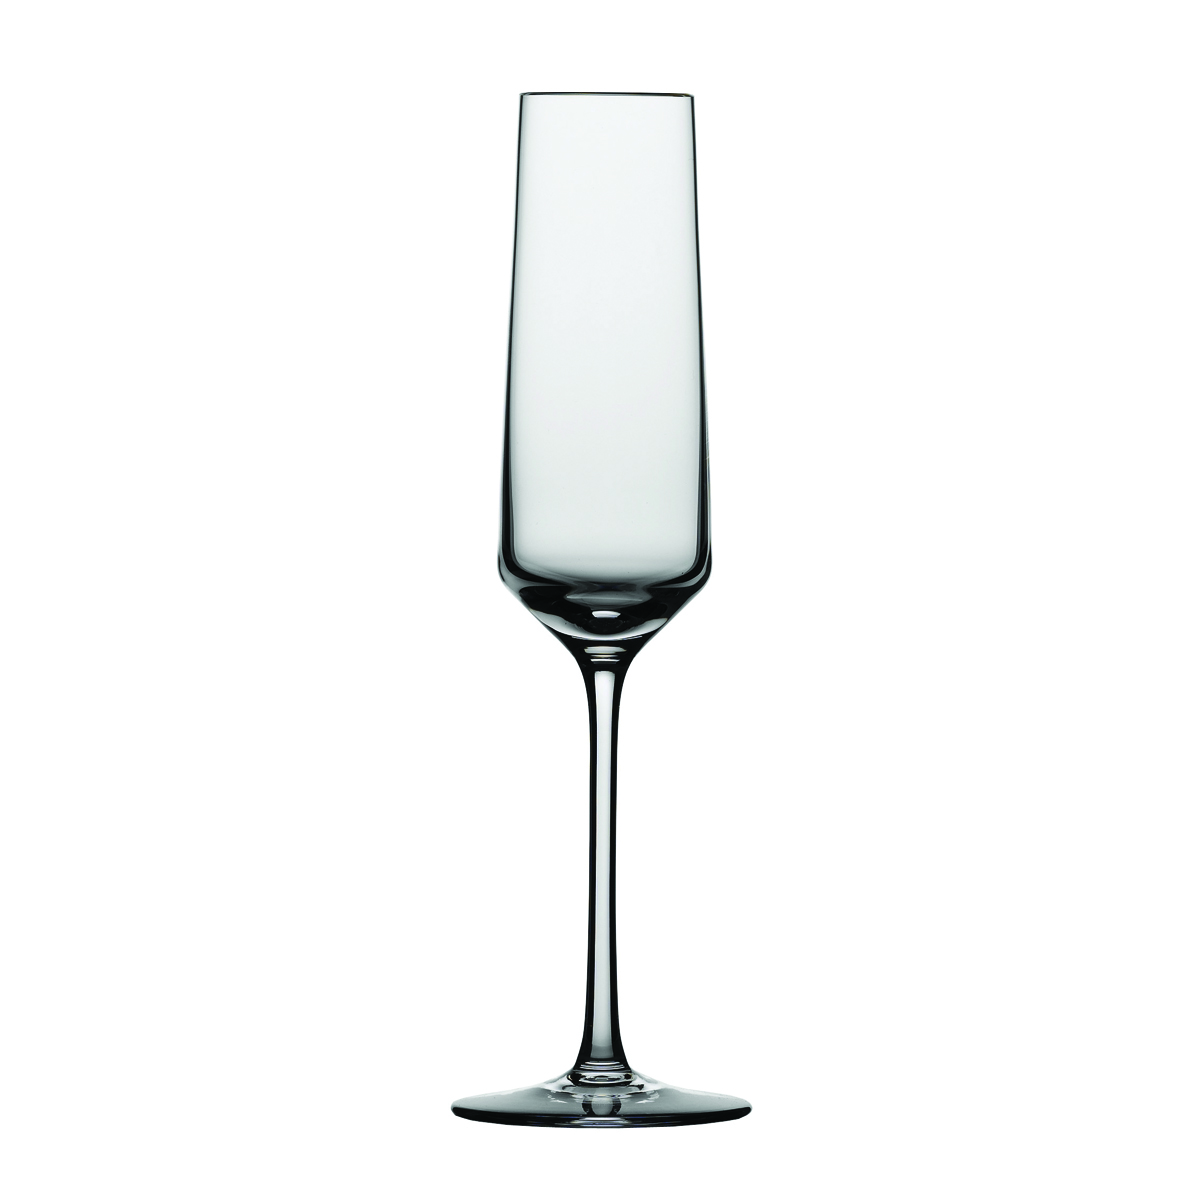 Schott Zwiesel Forte Wine Glasses | Titanium Wine Glass | Schott Zwiesel Wine Glasses